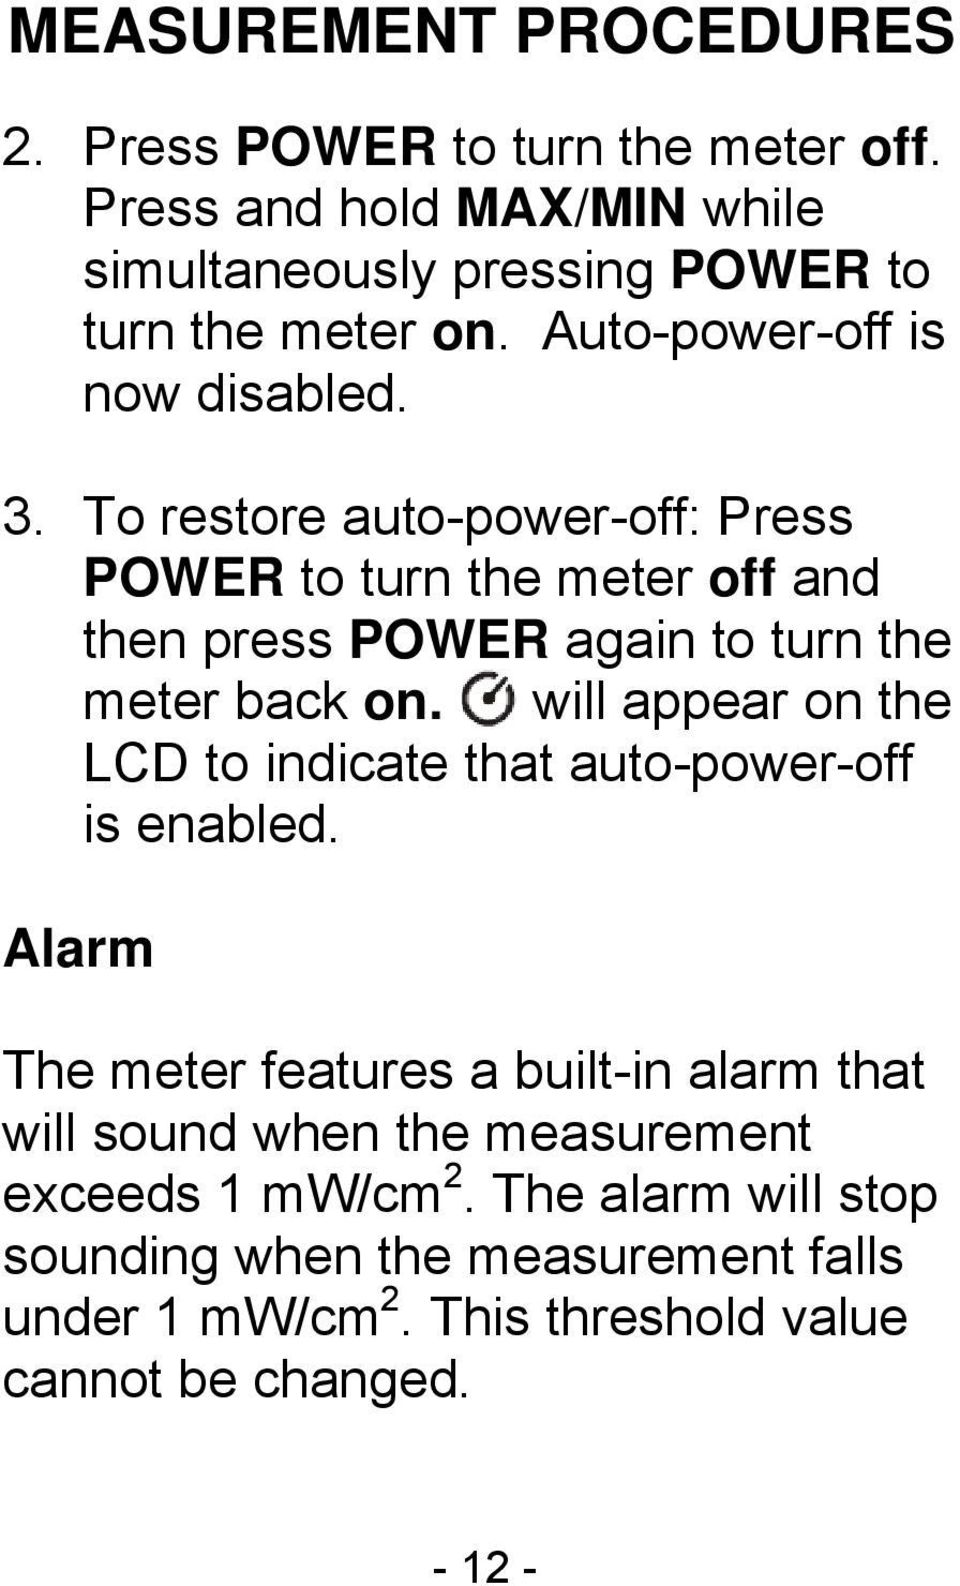 To restore auto-power-off: Press POWER to turn the meter off and then press POWER again to turn the meter back on.